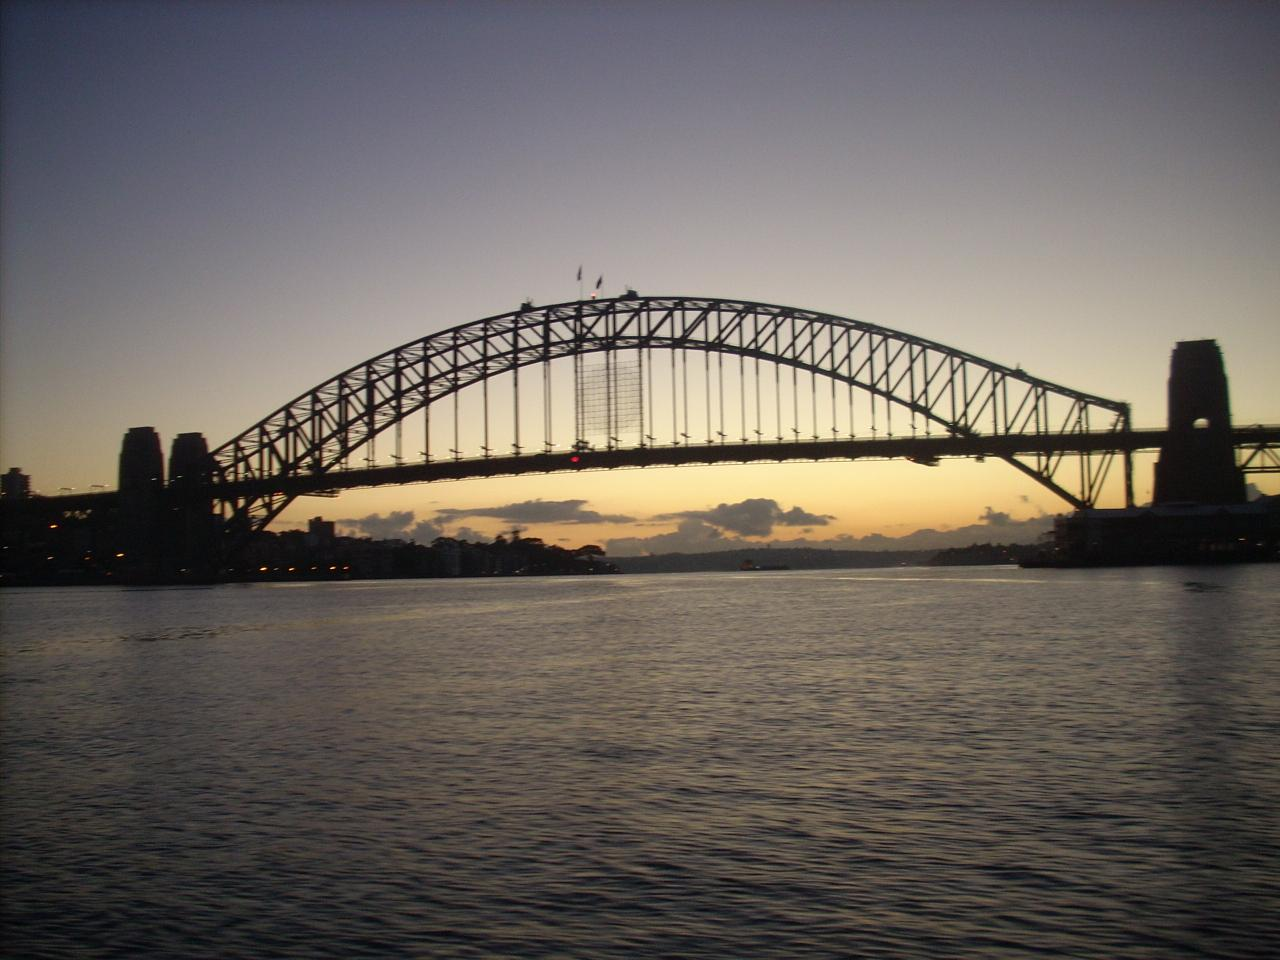 Sunrise over Sensational Sydney Harbour